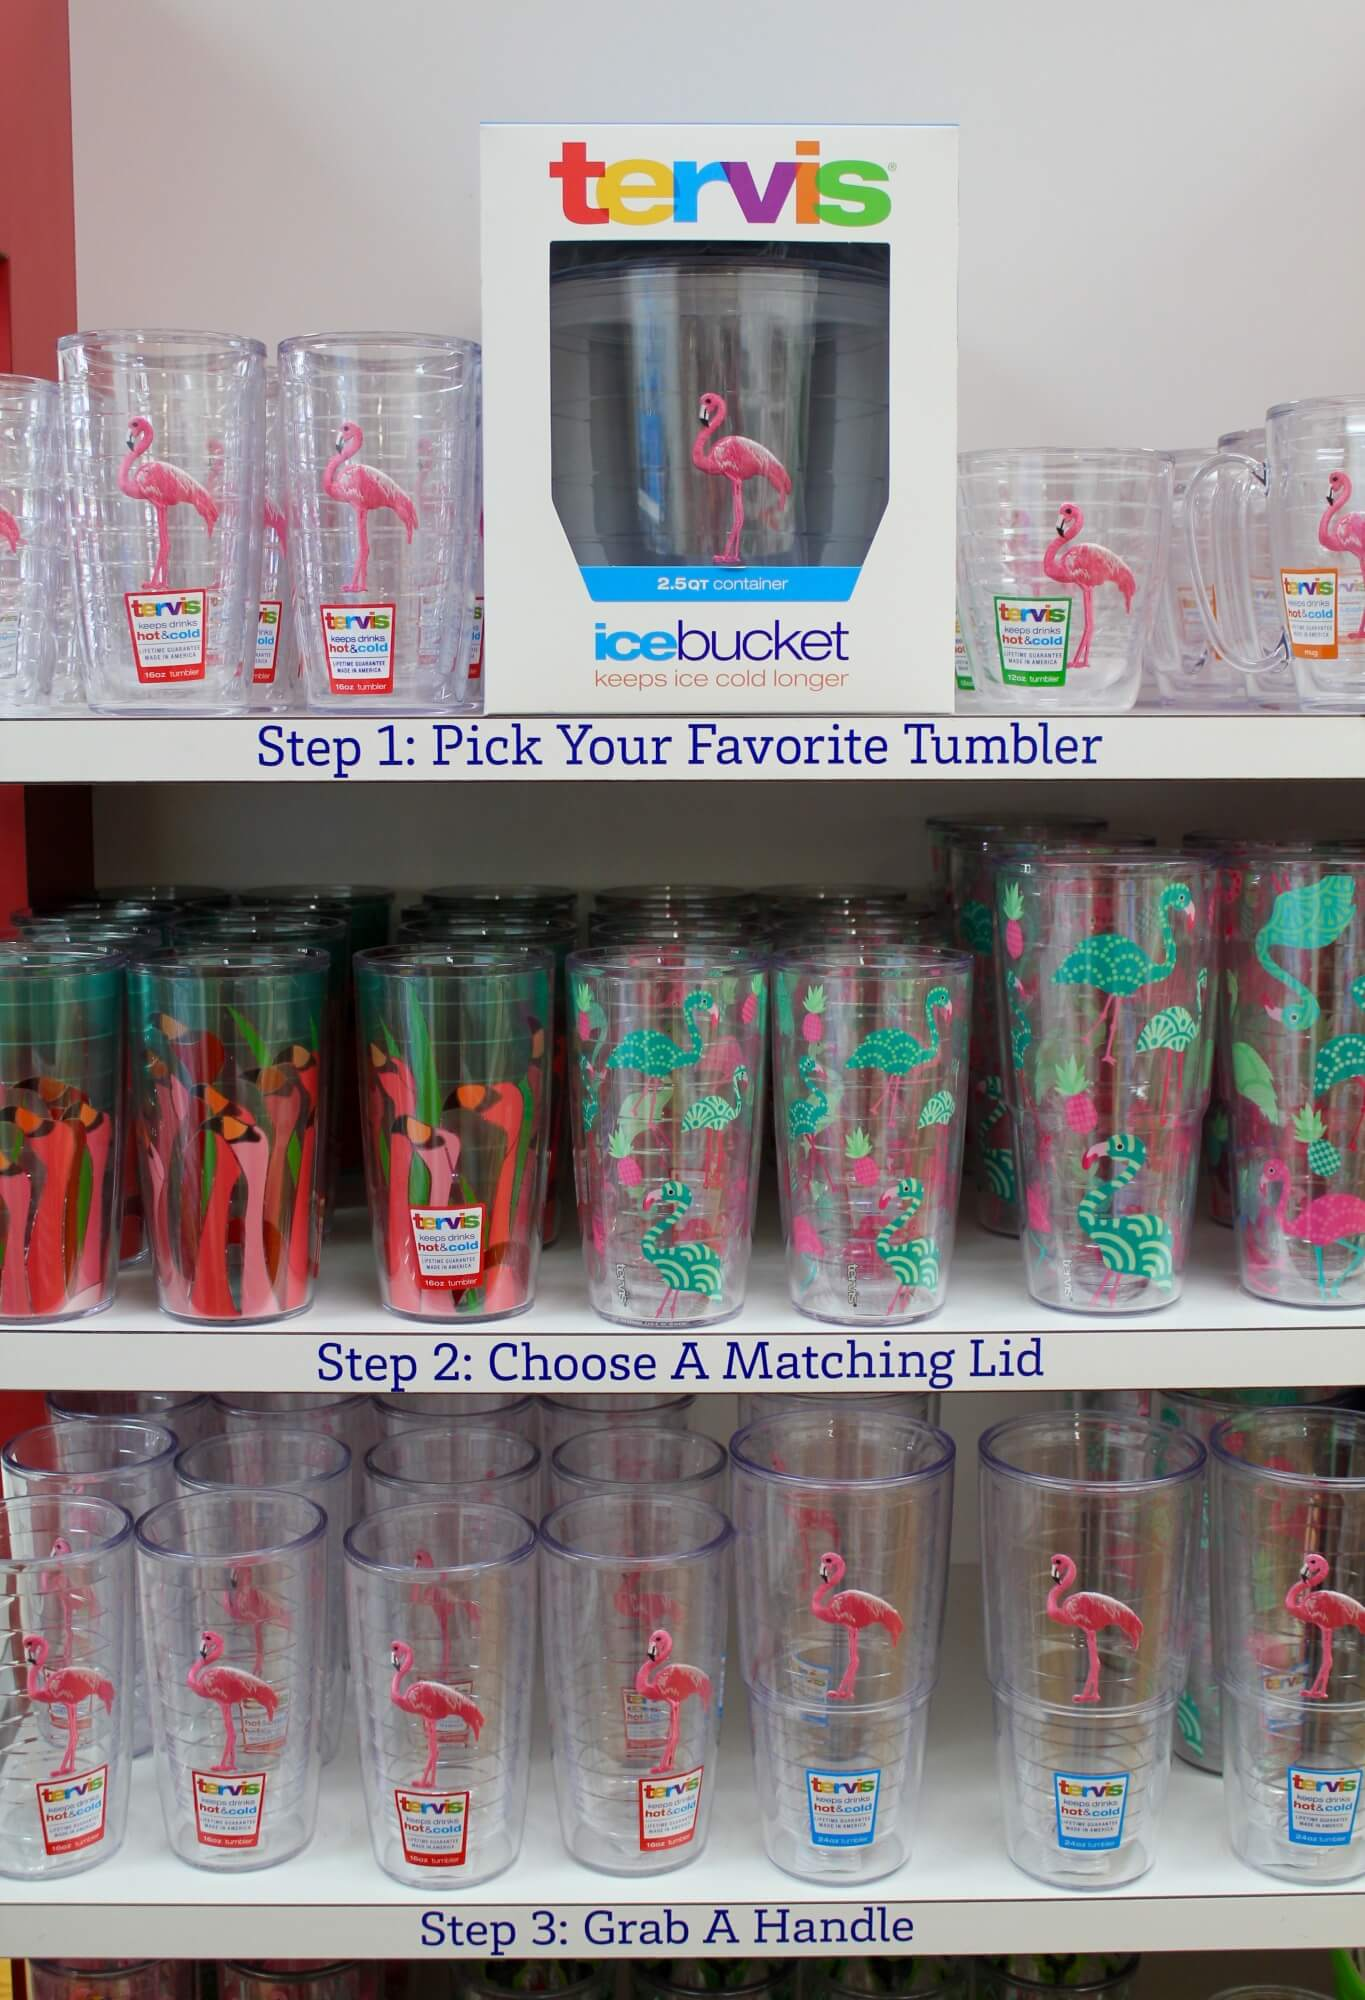 Tervis insulated tumblers come in a variety of sizes and designs